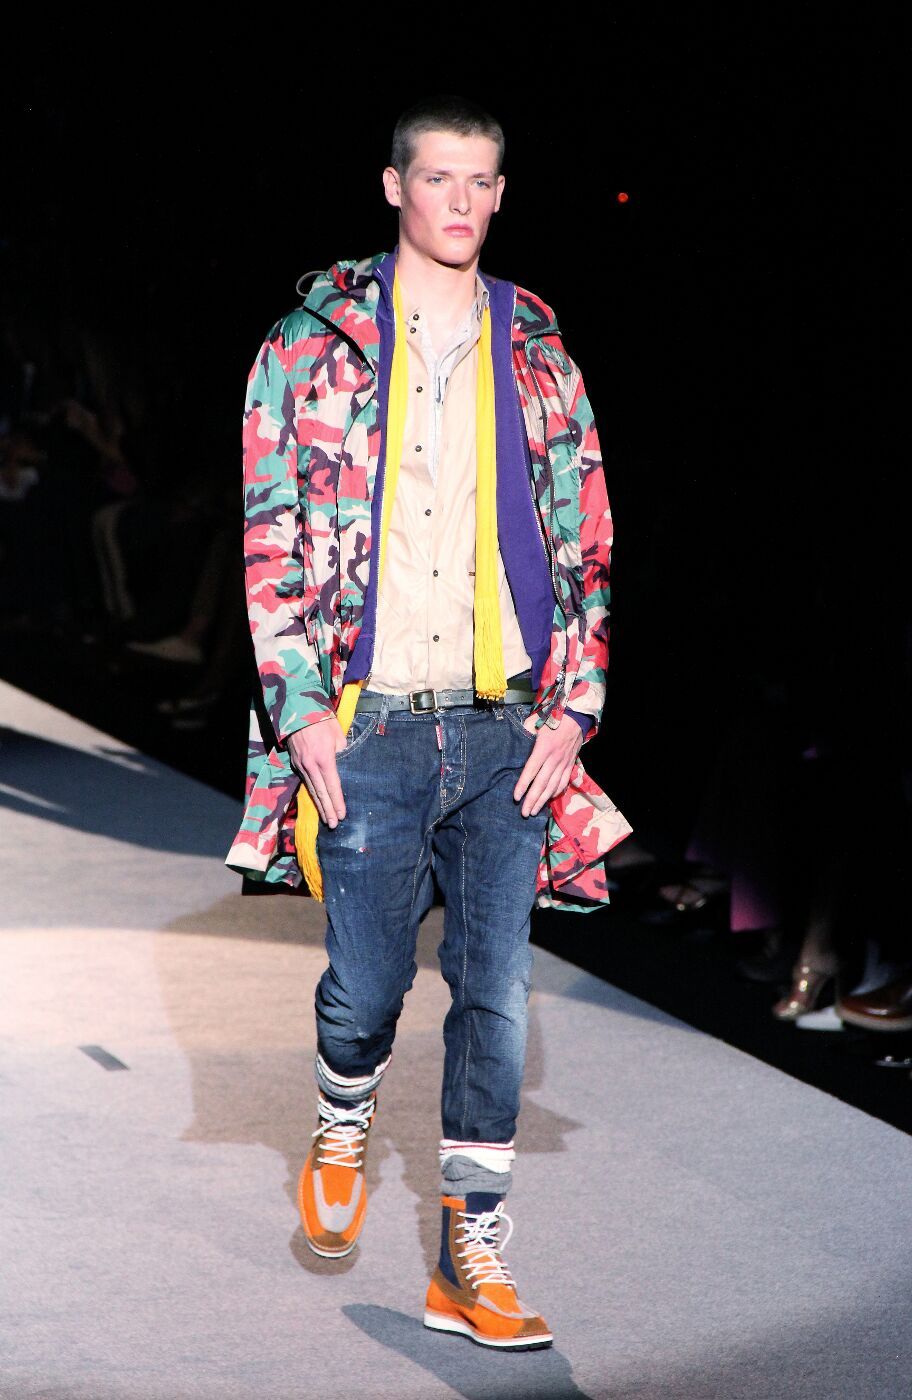 dsquared2-spring-summer-2012-fashion-show-catwalk